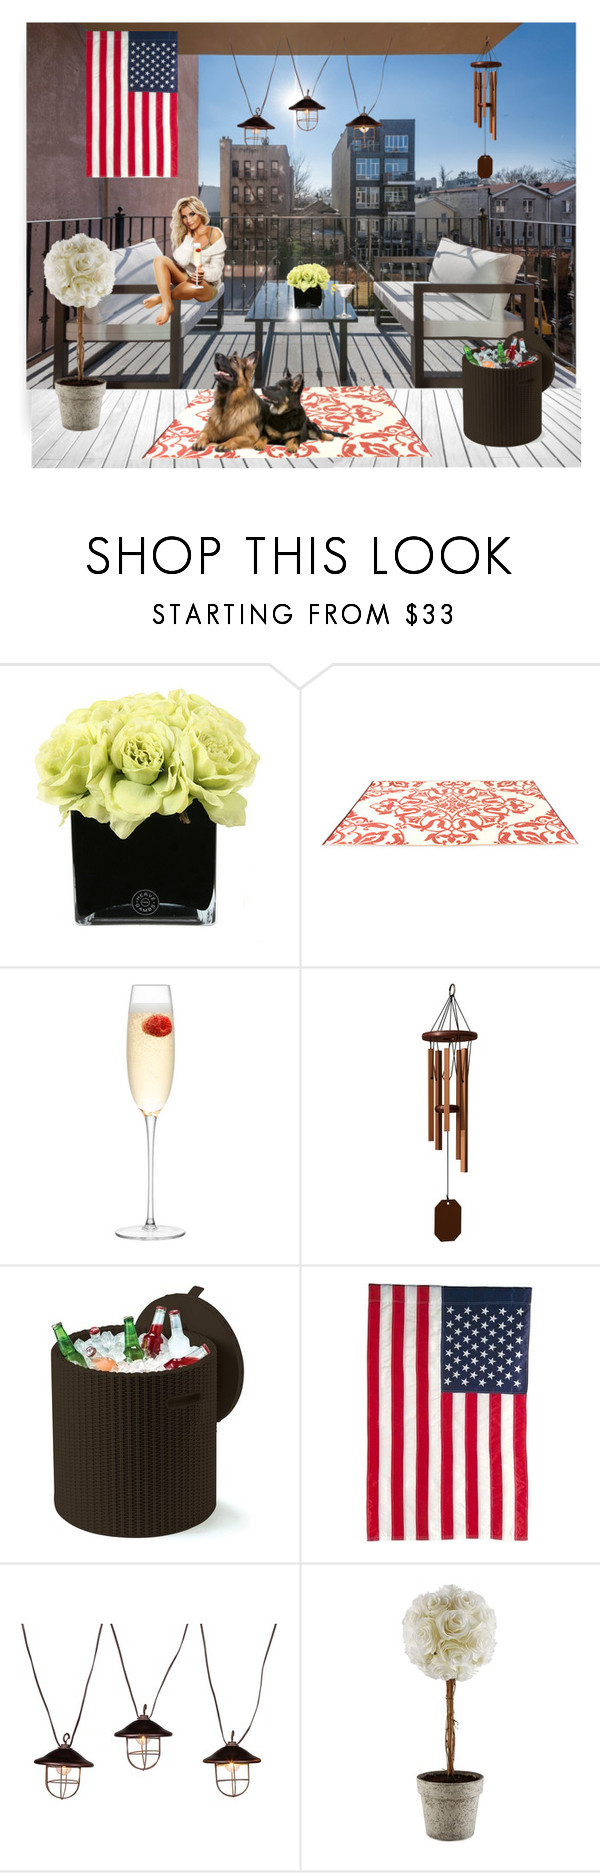 """""""Untitled #718"""" by lulalalala ❤ liked on Polyvore featuring interior, interiors, interior design, home, home decor, interior decorating, Hervé Gambs, LSA International, DutchCrafters and Keter"""